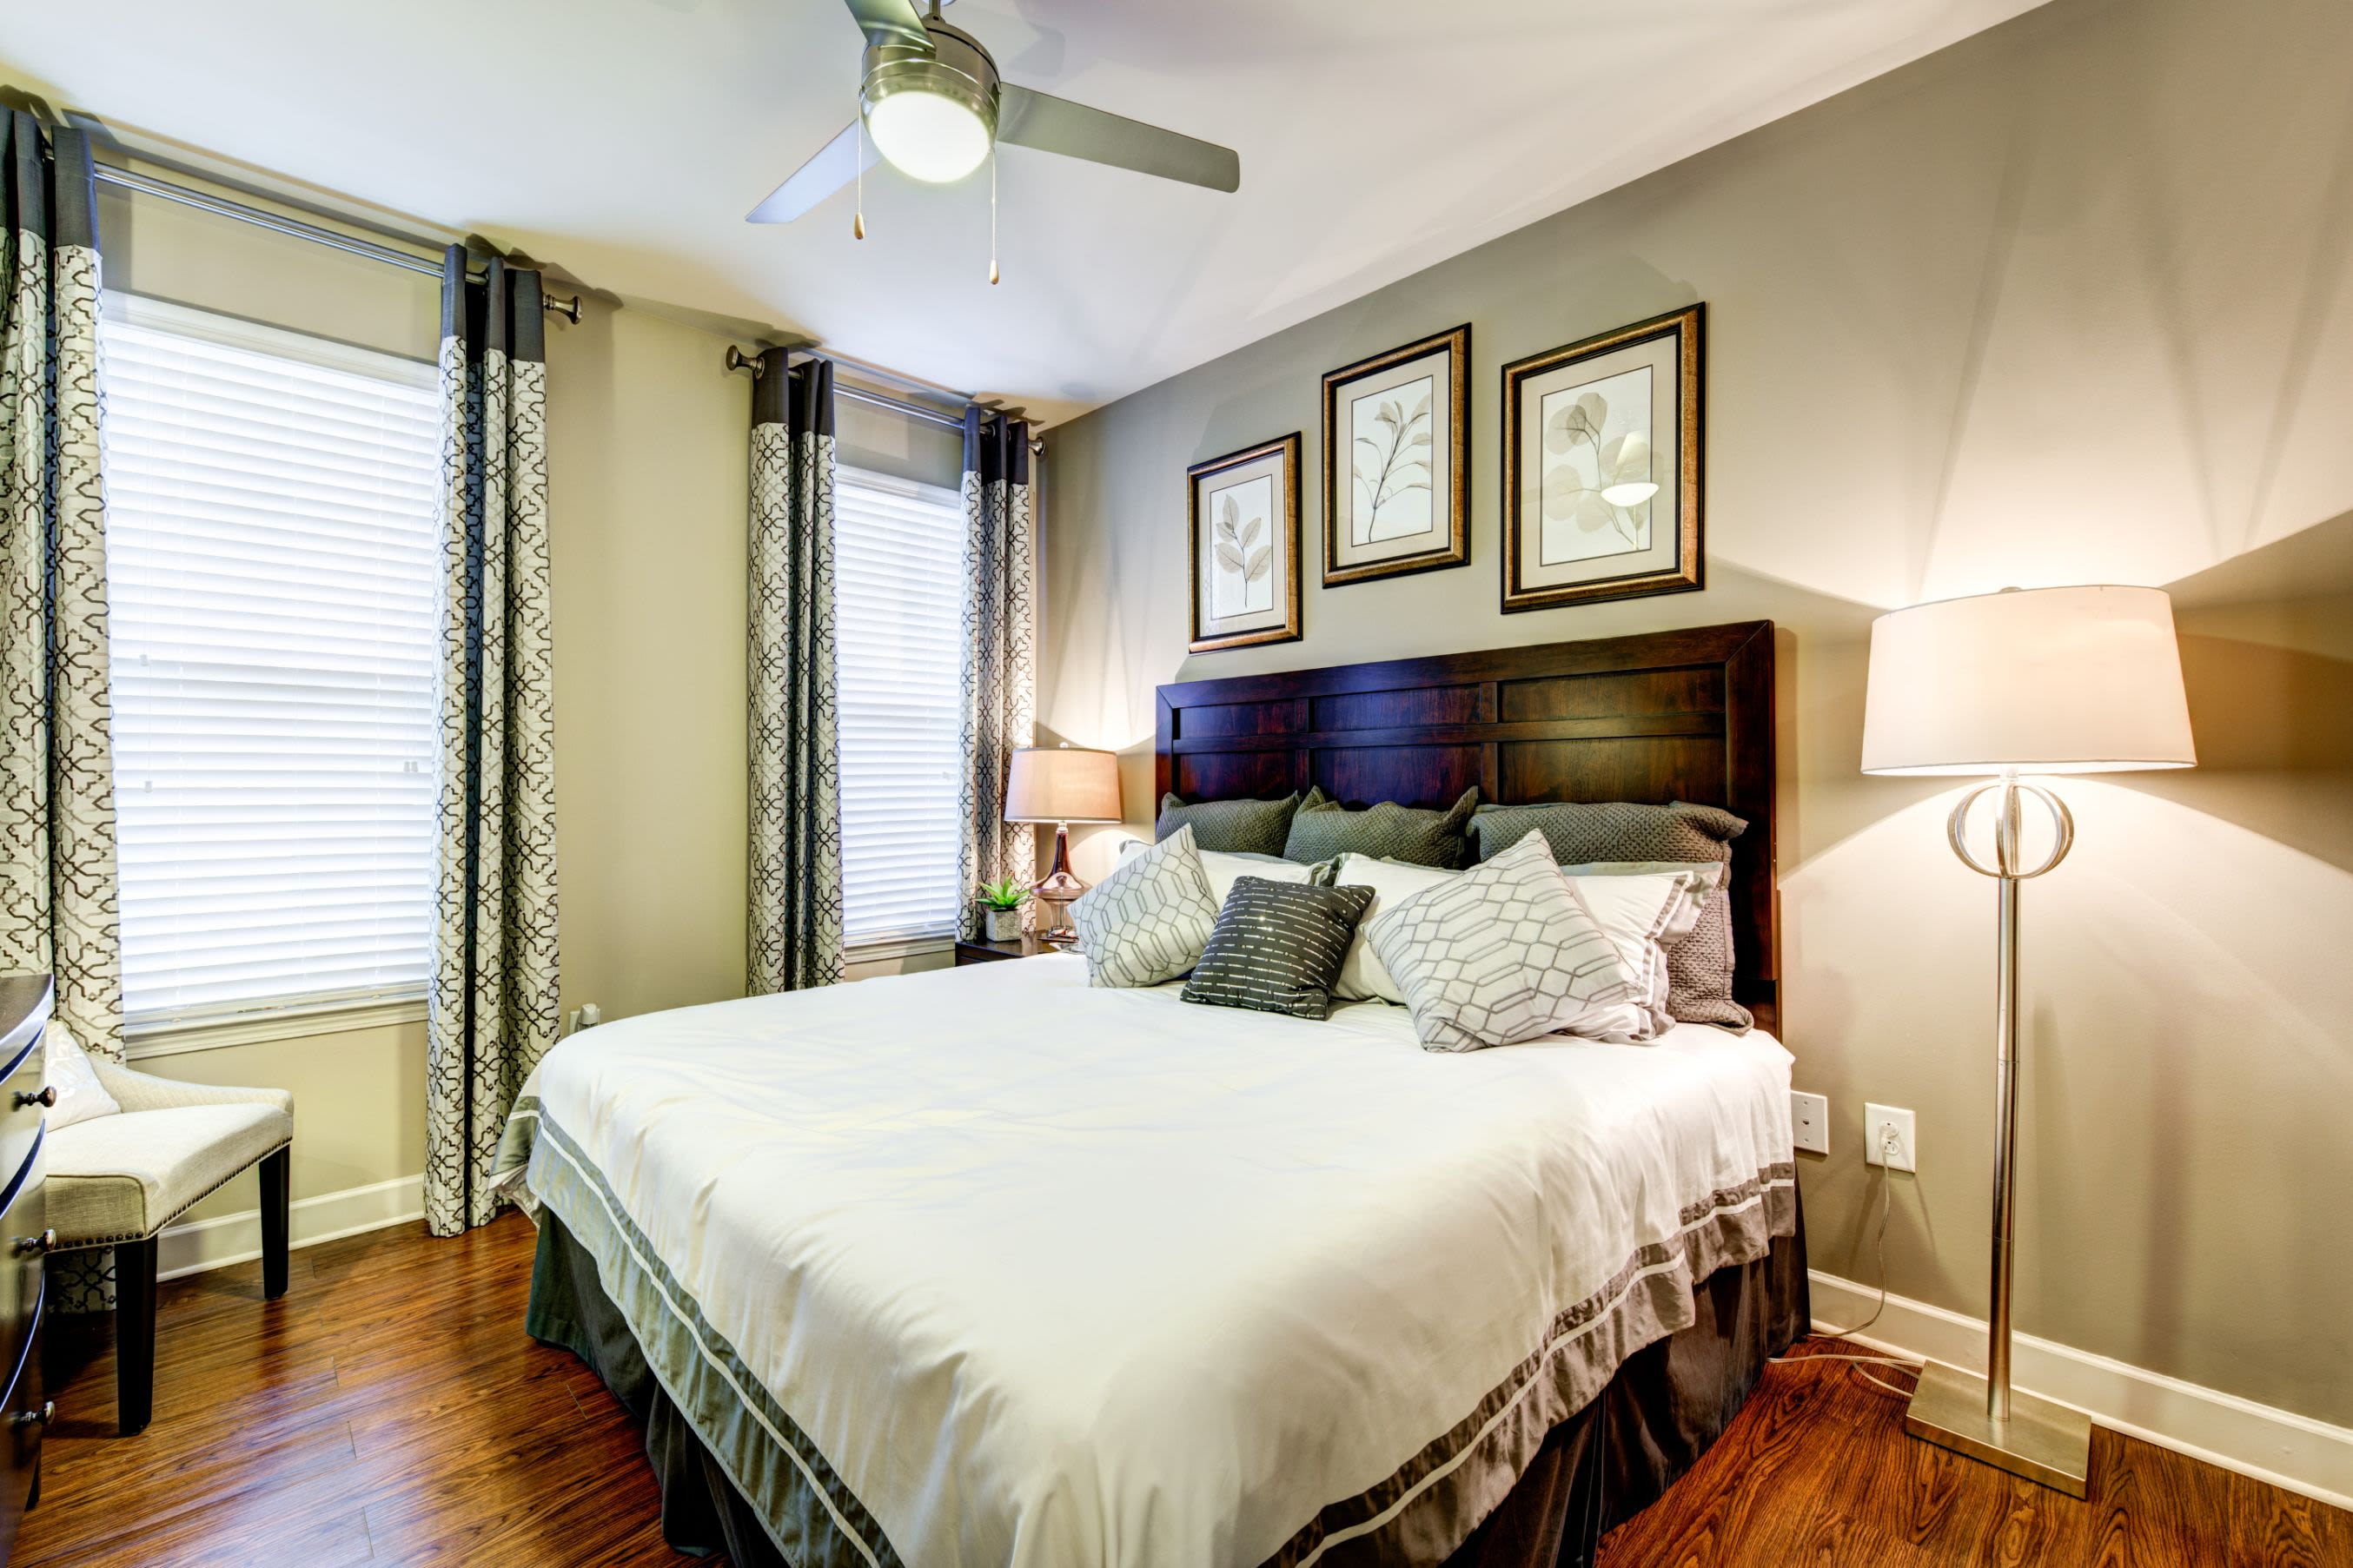 Bright bedroom with large windows at Marquis at Morrison Plantation in Mooresville, North Carolina